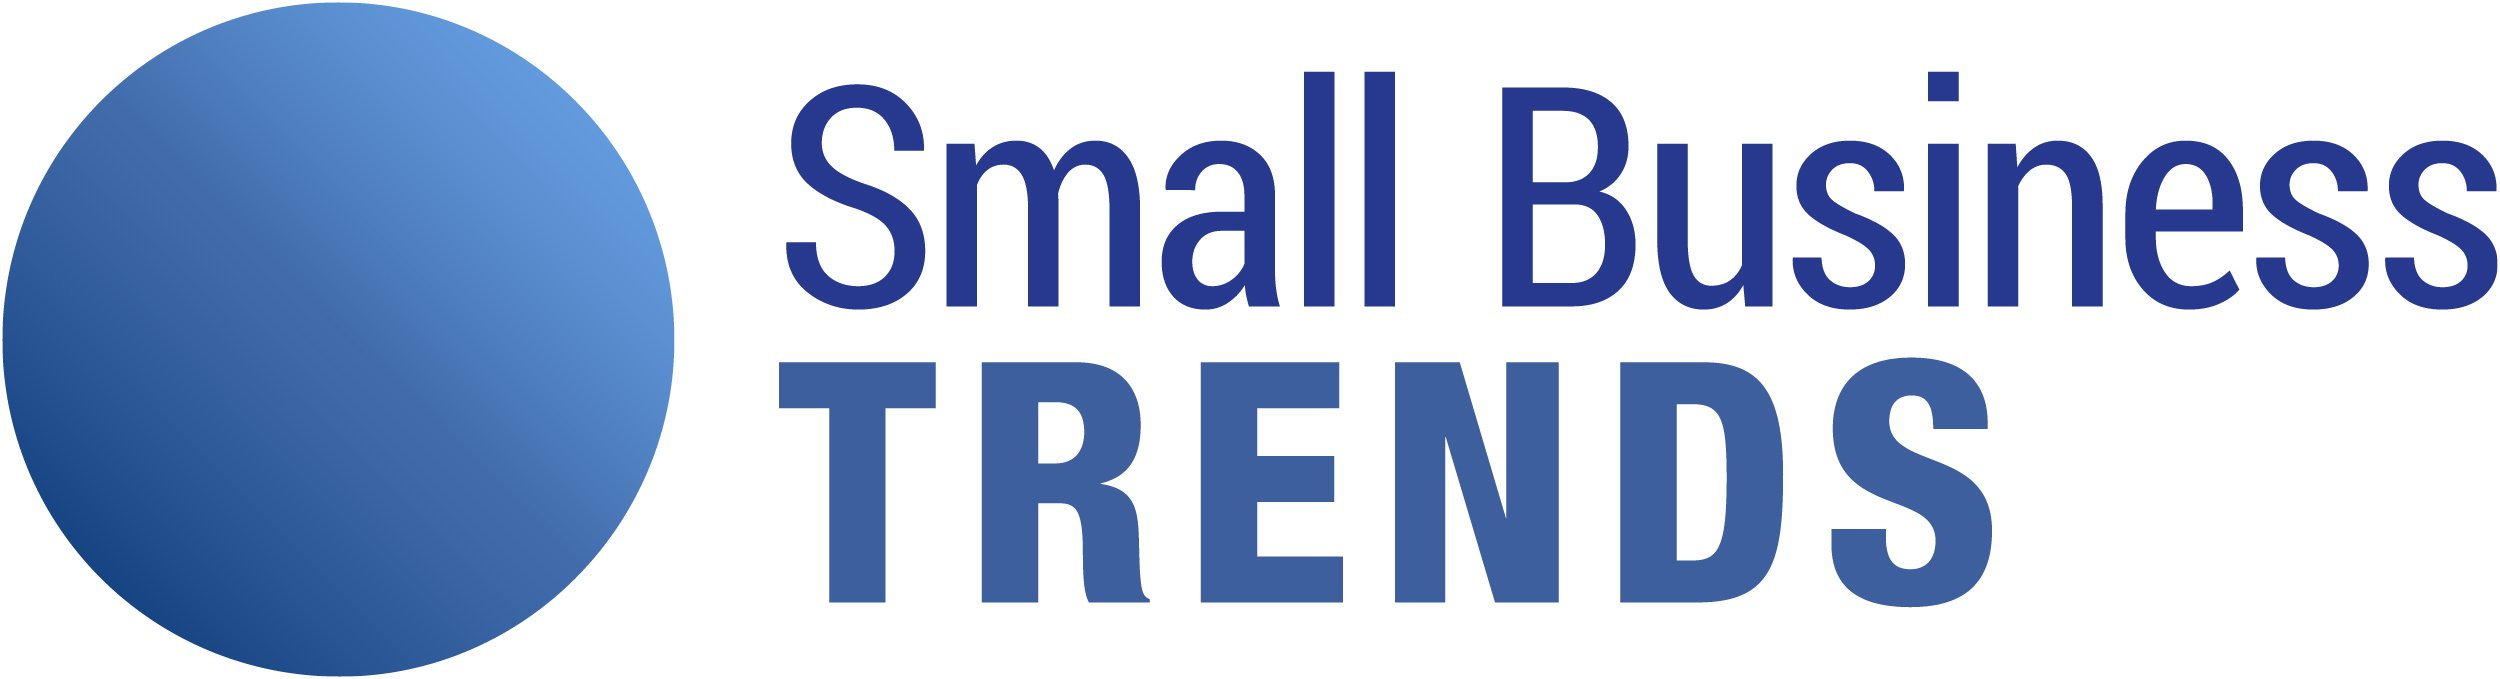 Small-Business-Trends-logo-2500w.jpg